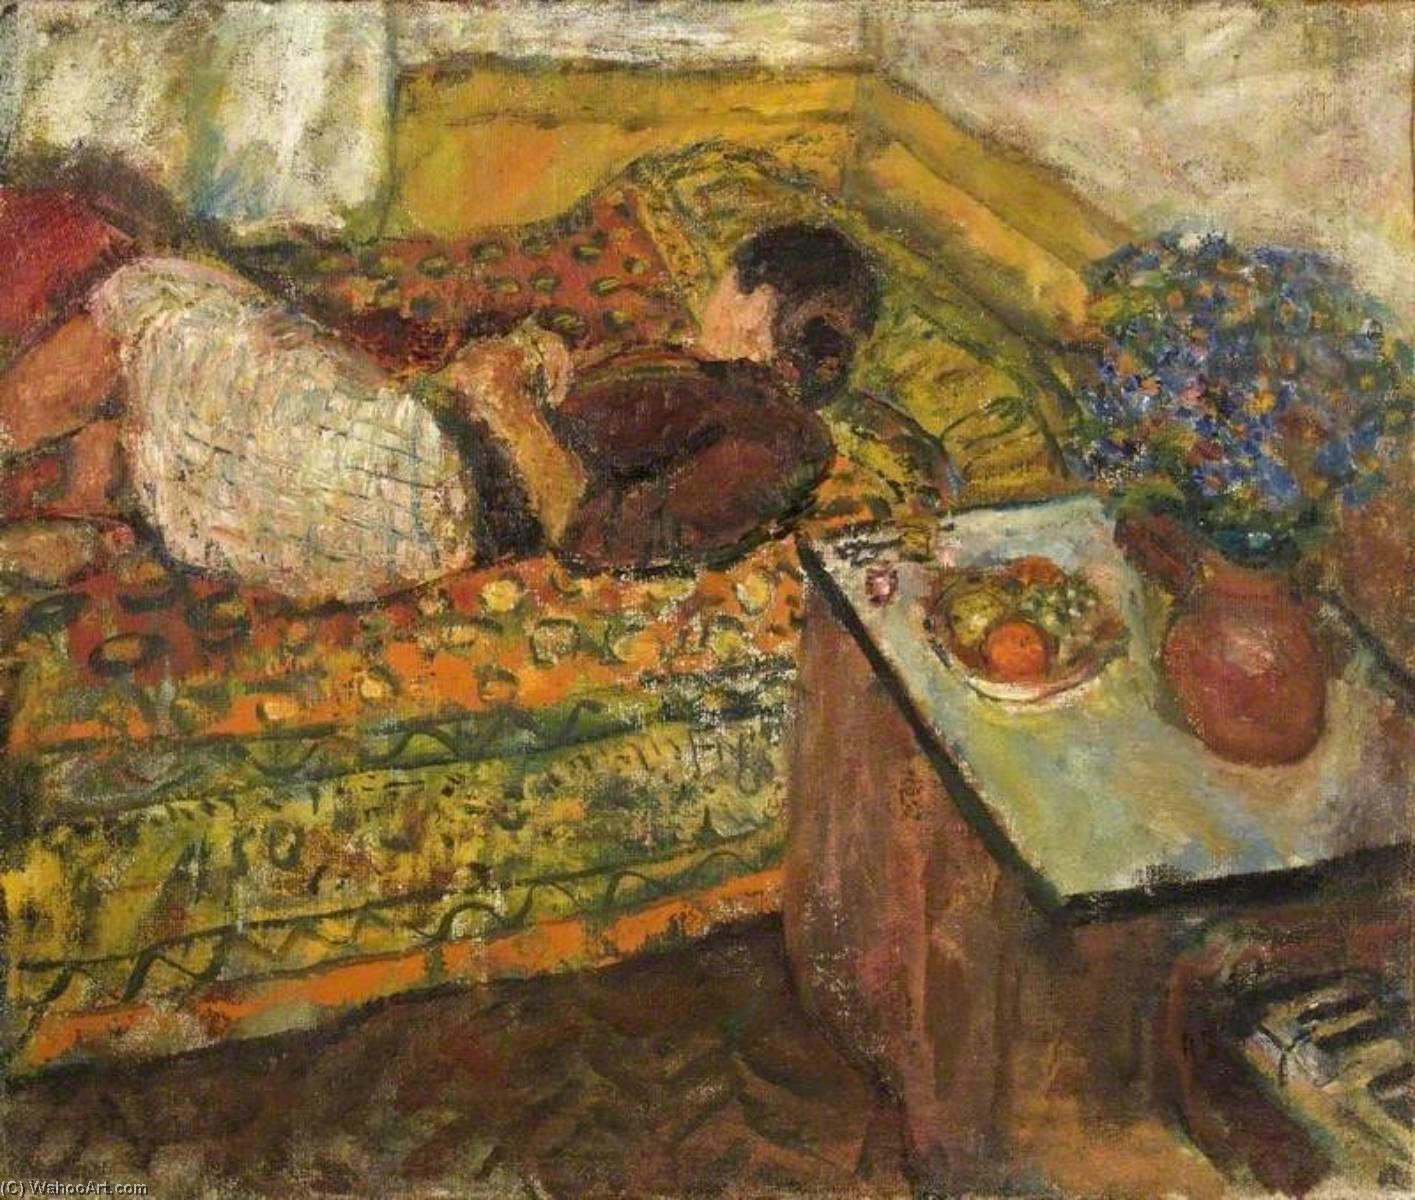 | Siesta por Ruskin Spear | Most-Famous-Paintings.com